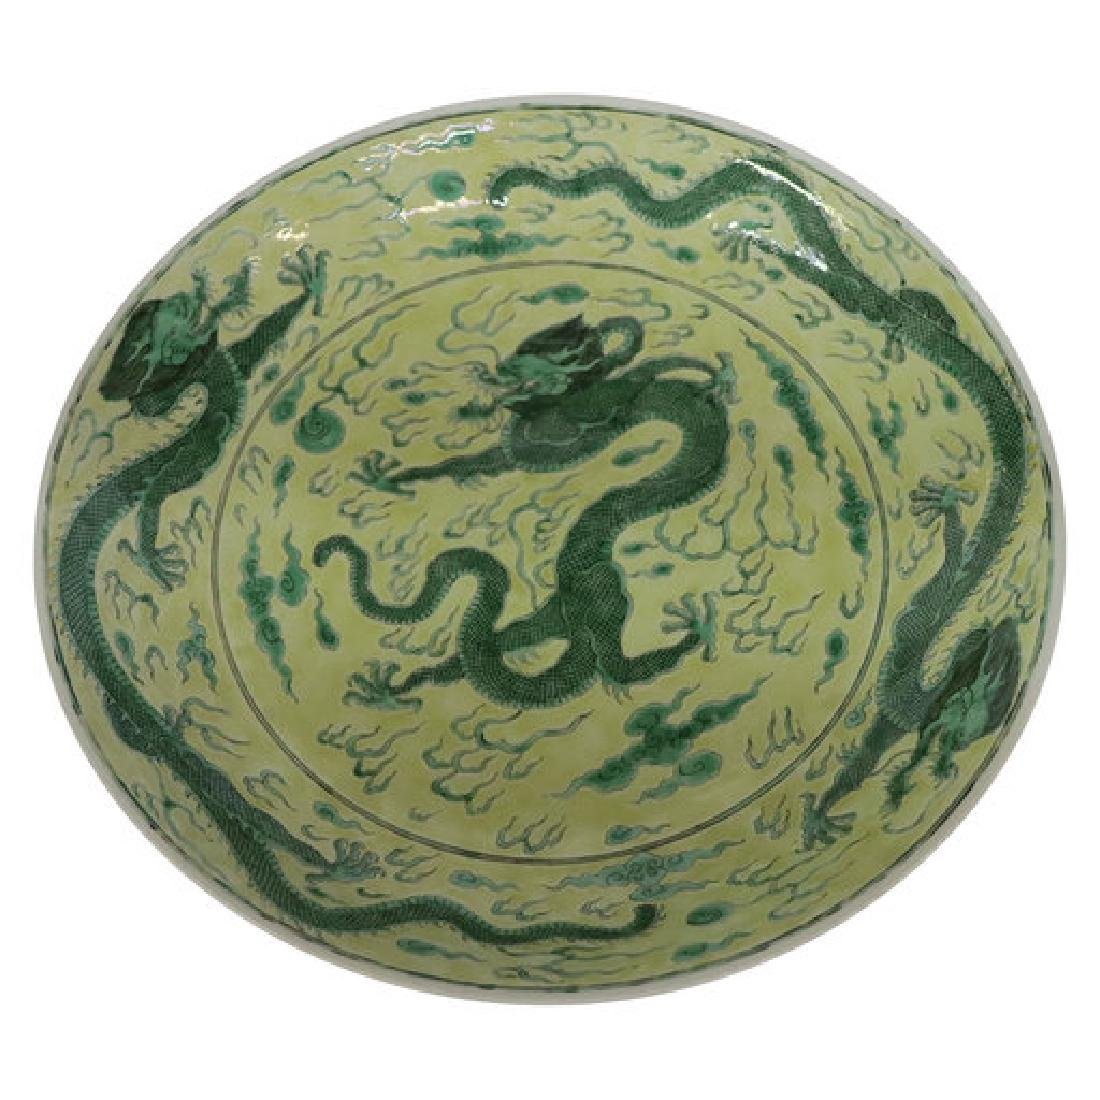 Large Chinese Bowl depicting a dragon.